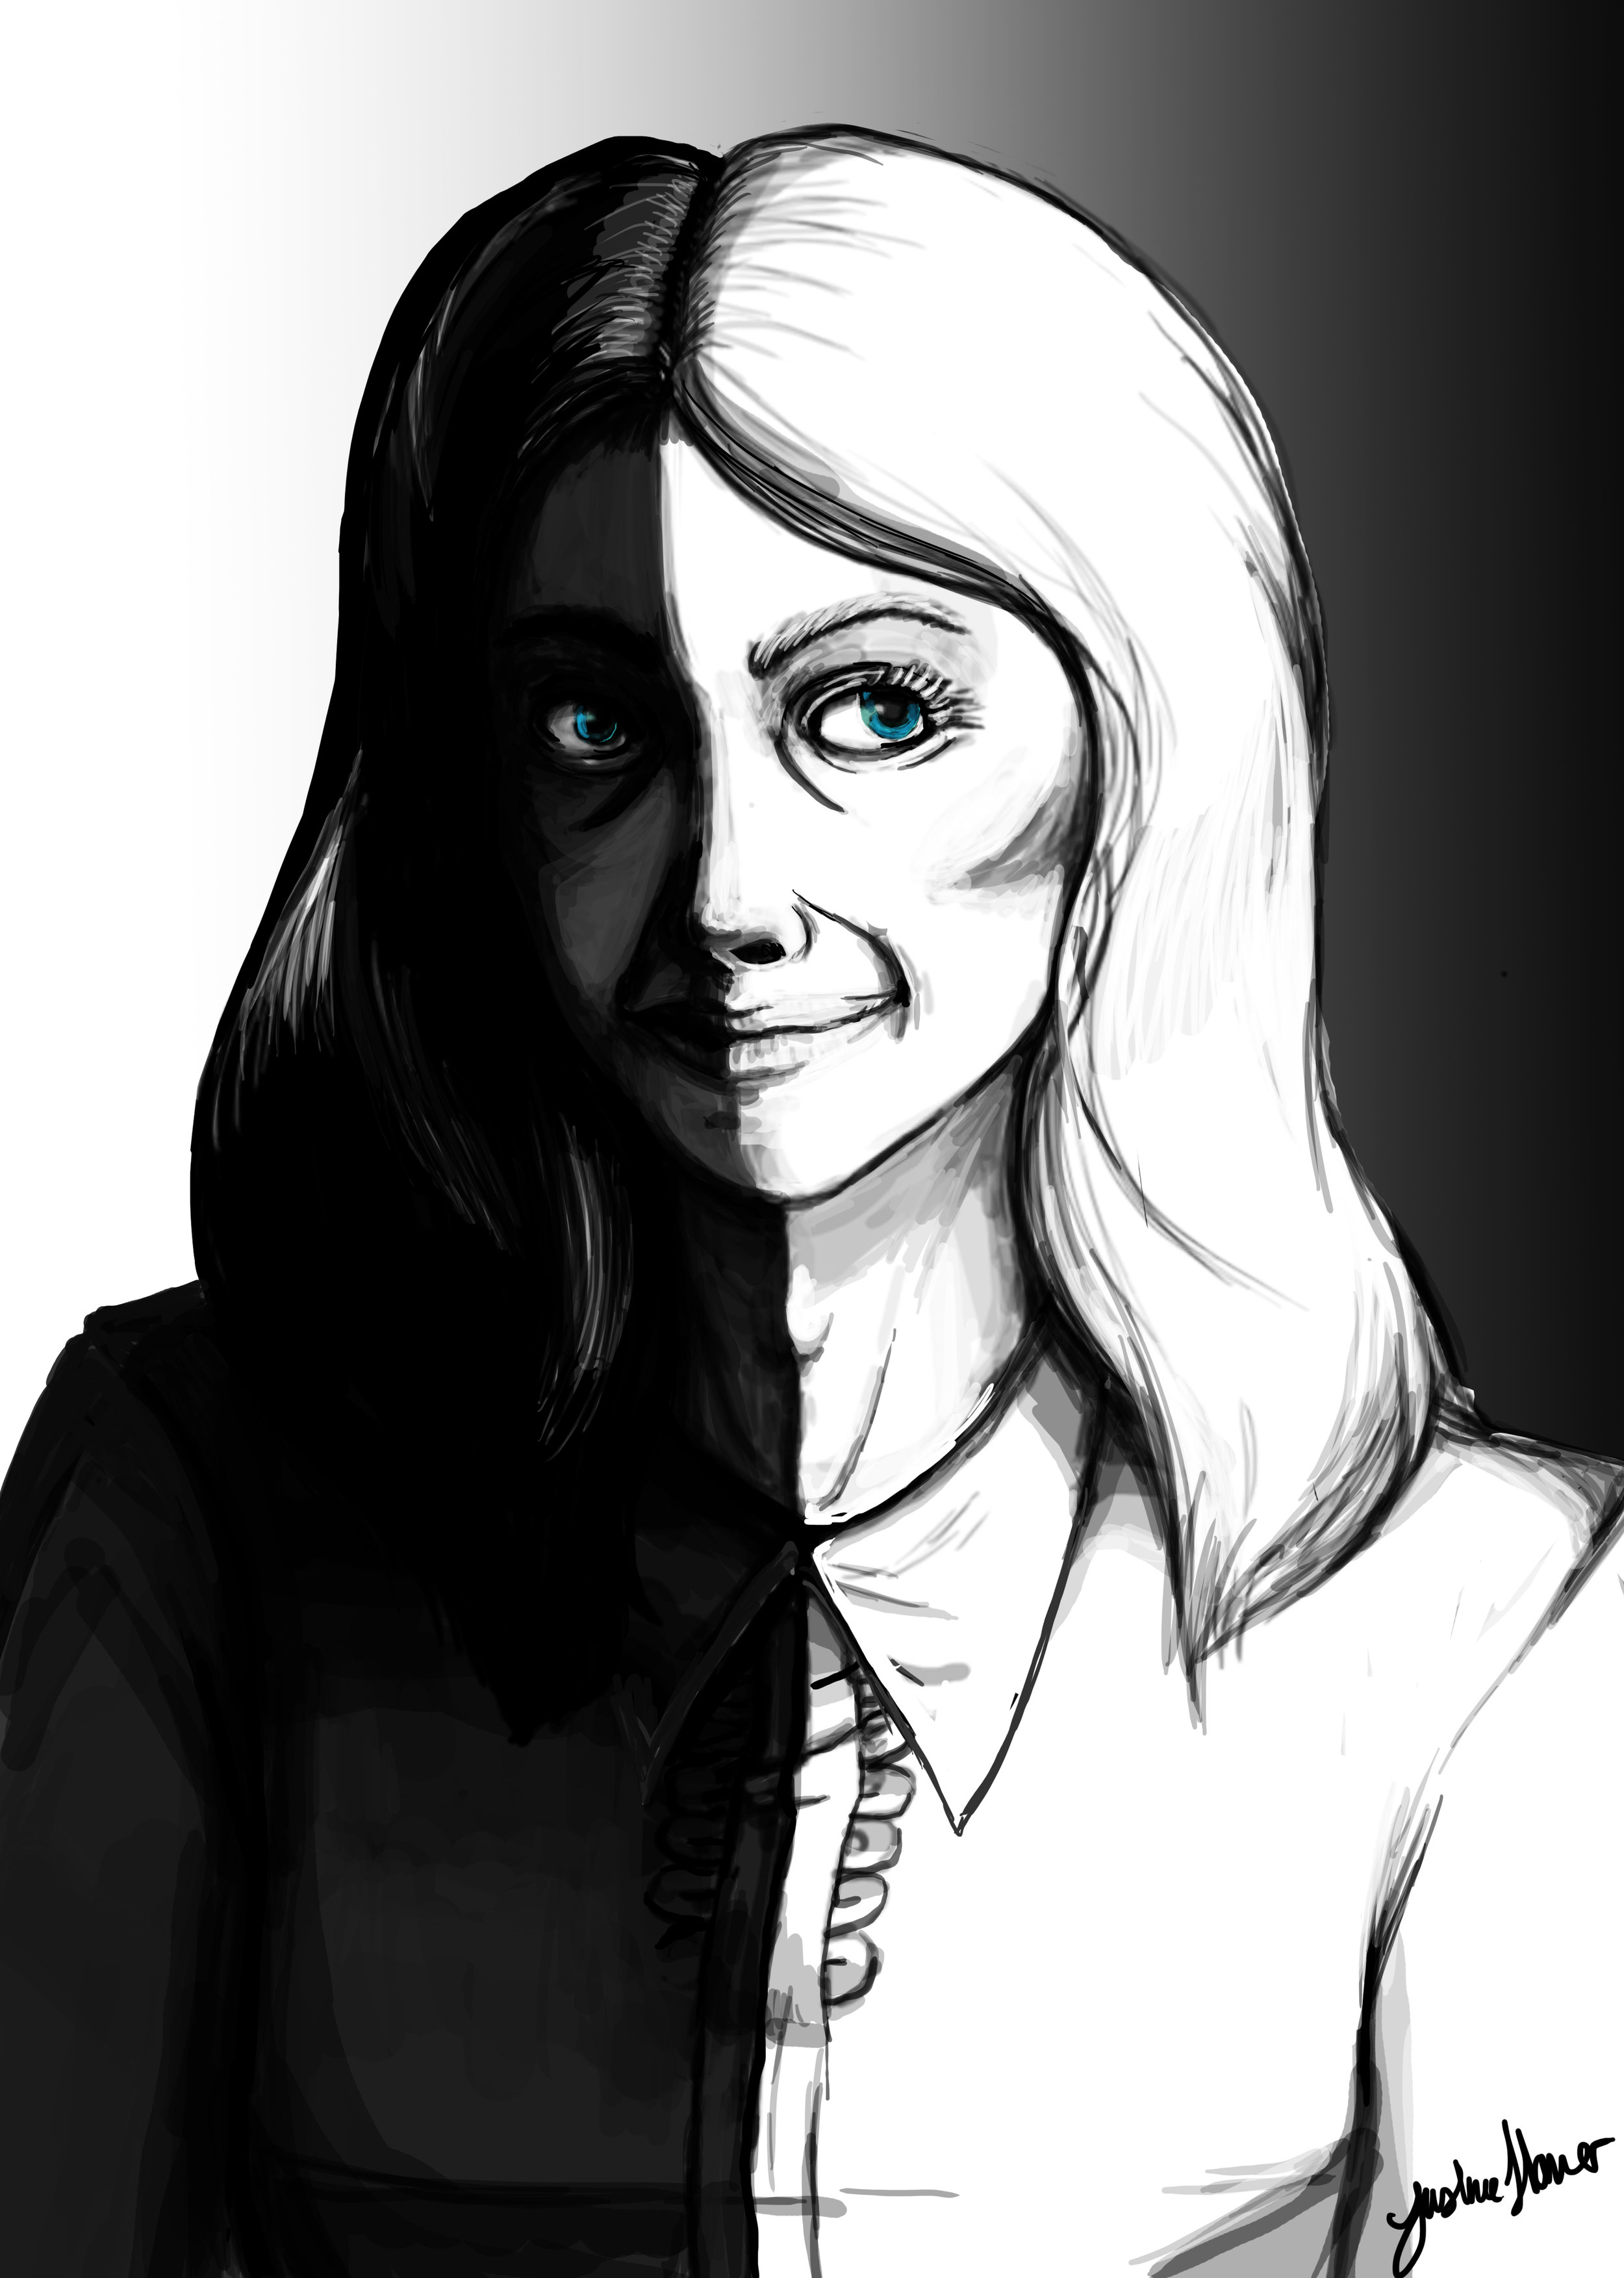 This sketch of the character Felix Mortimer was developed in the mind of the well known American digital artist Justine Hamer. Justine was also responsible for Emily's cover art.